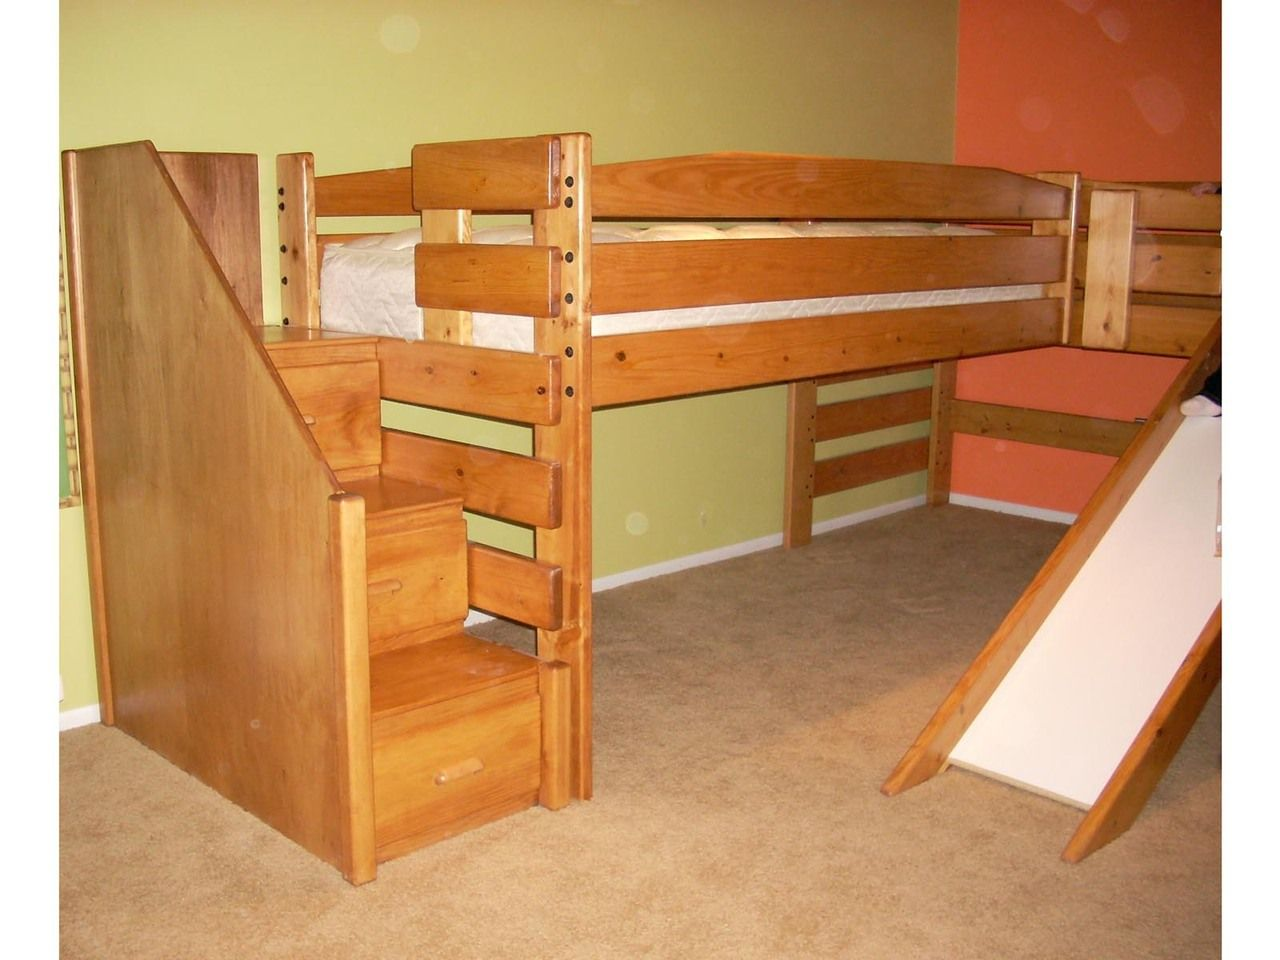 Exceptionnel Kid Tough Solid Wood Low L Shape Loft Beds With Stairs And Slide. Custom  Built By Hand. You Choose The Best Finish And Options For Your Room.